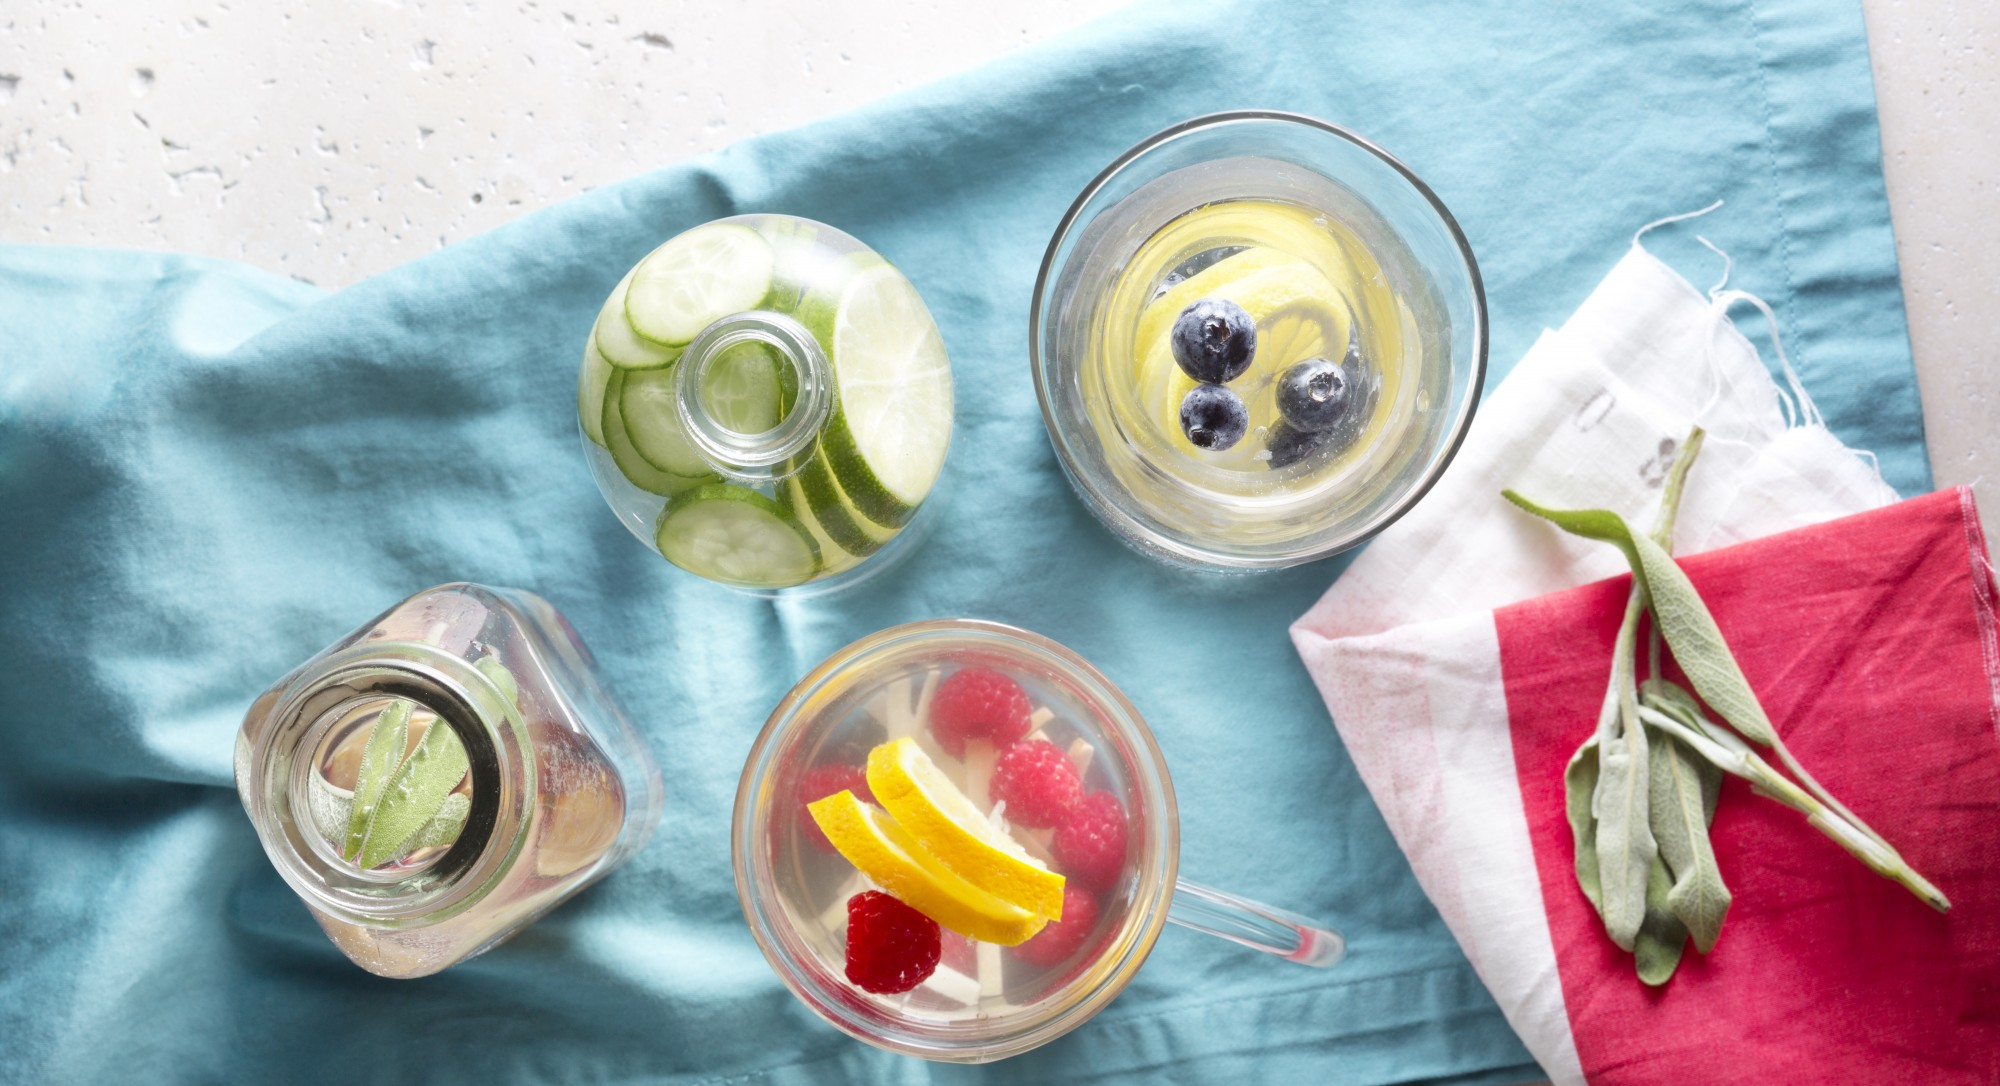 Kick Back and Relax With These Fruit-Infused Coconut Waters